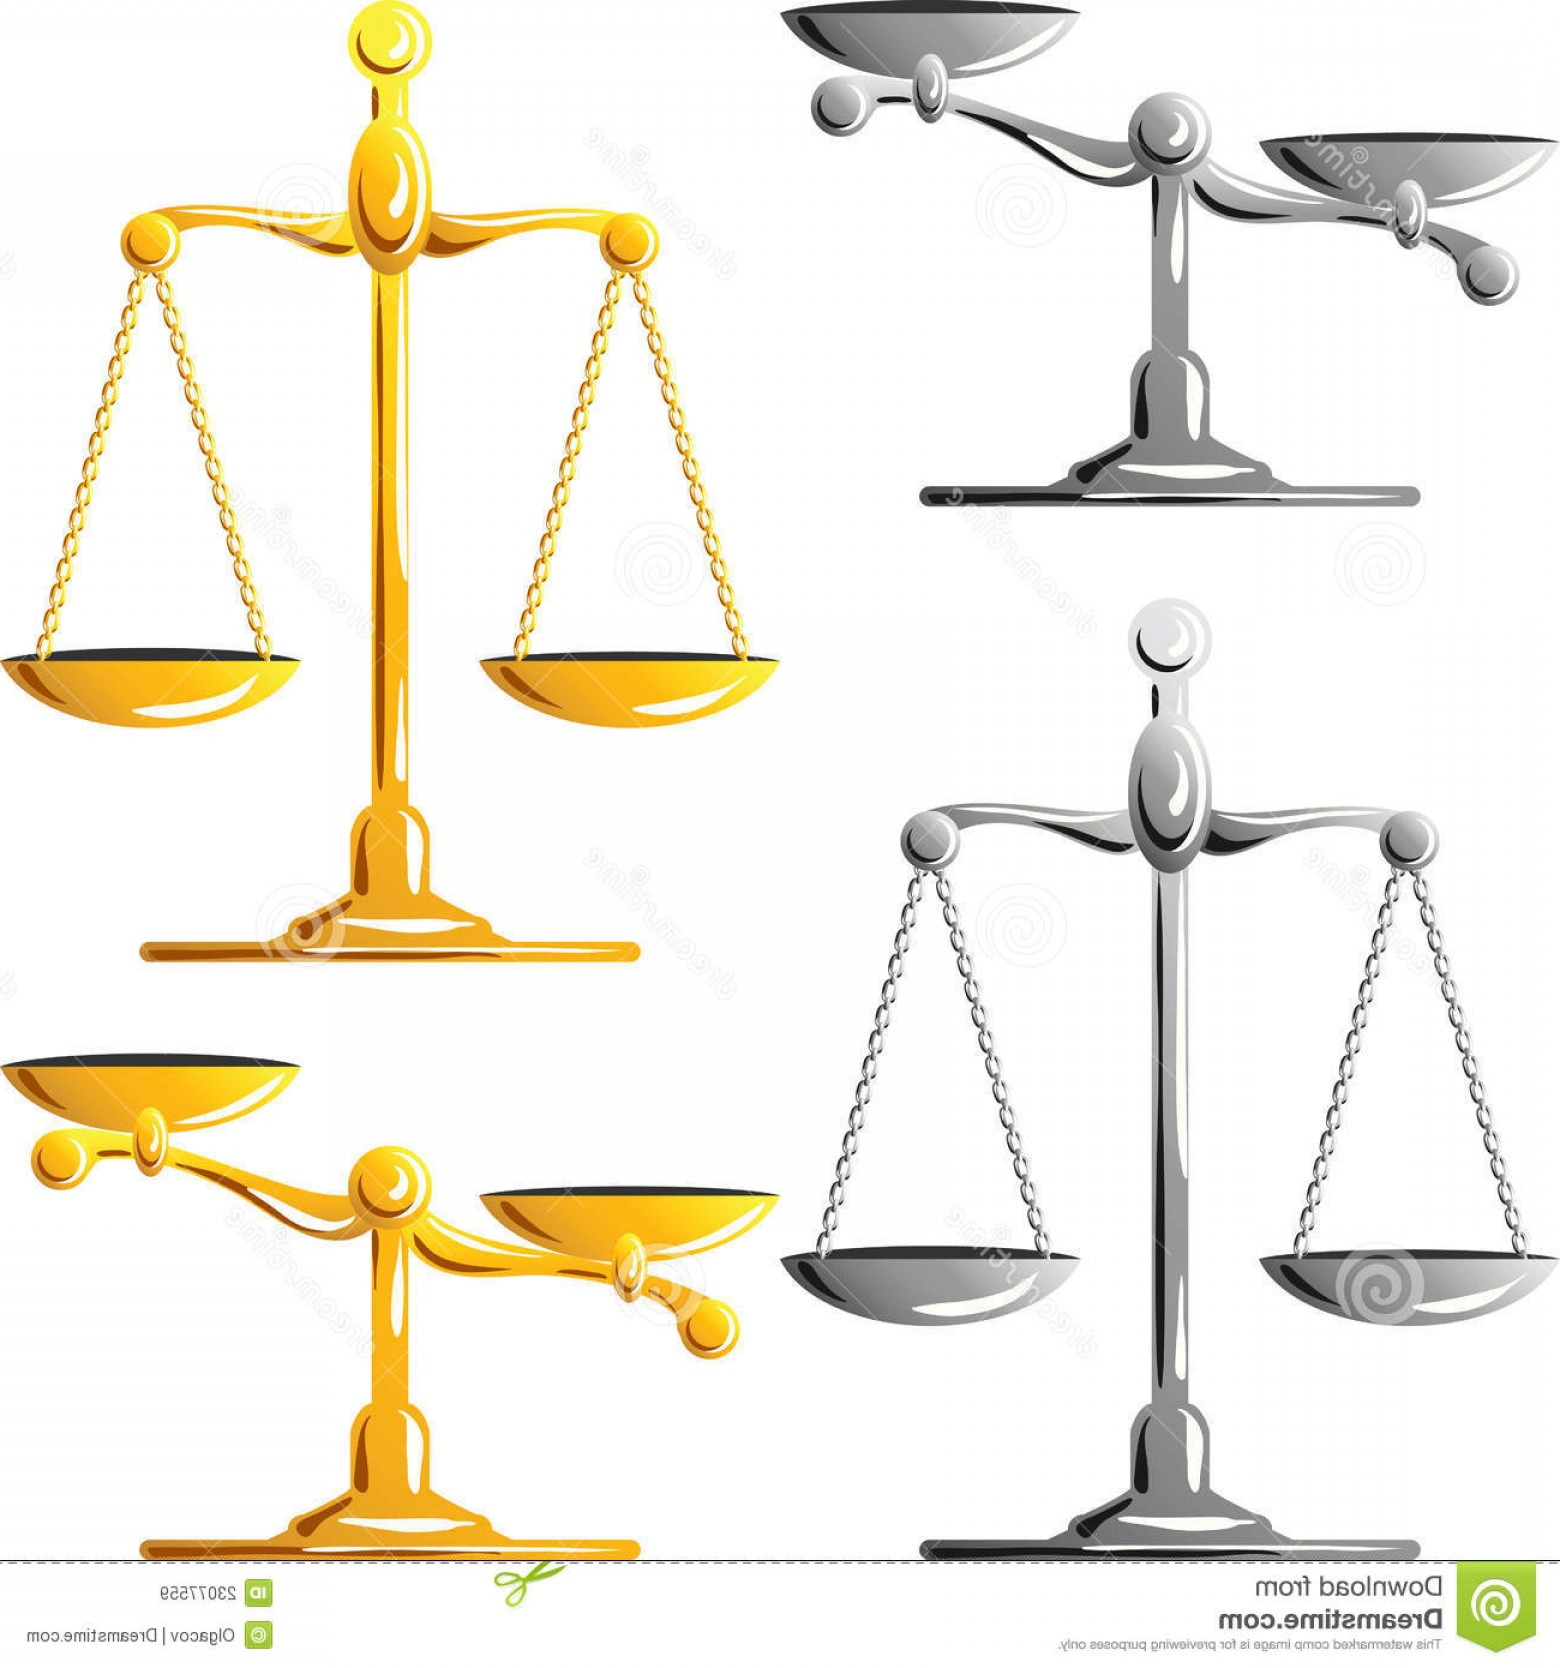 Scales Of Justice Vector: Royalty Free Stock Images Vector Gold Silver Scales Justice Image